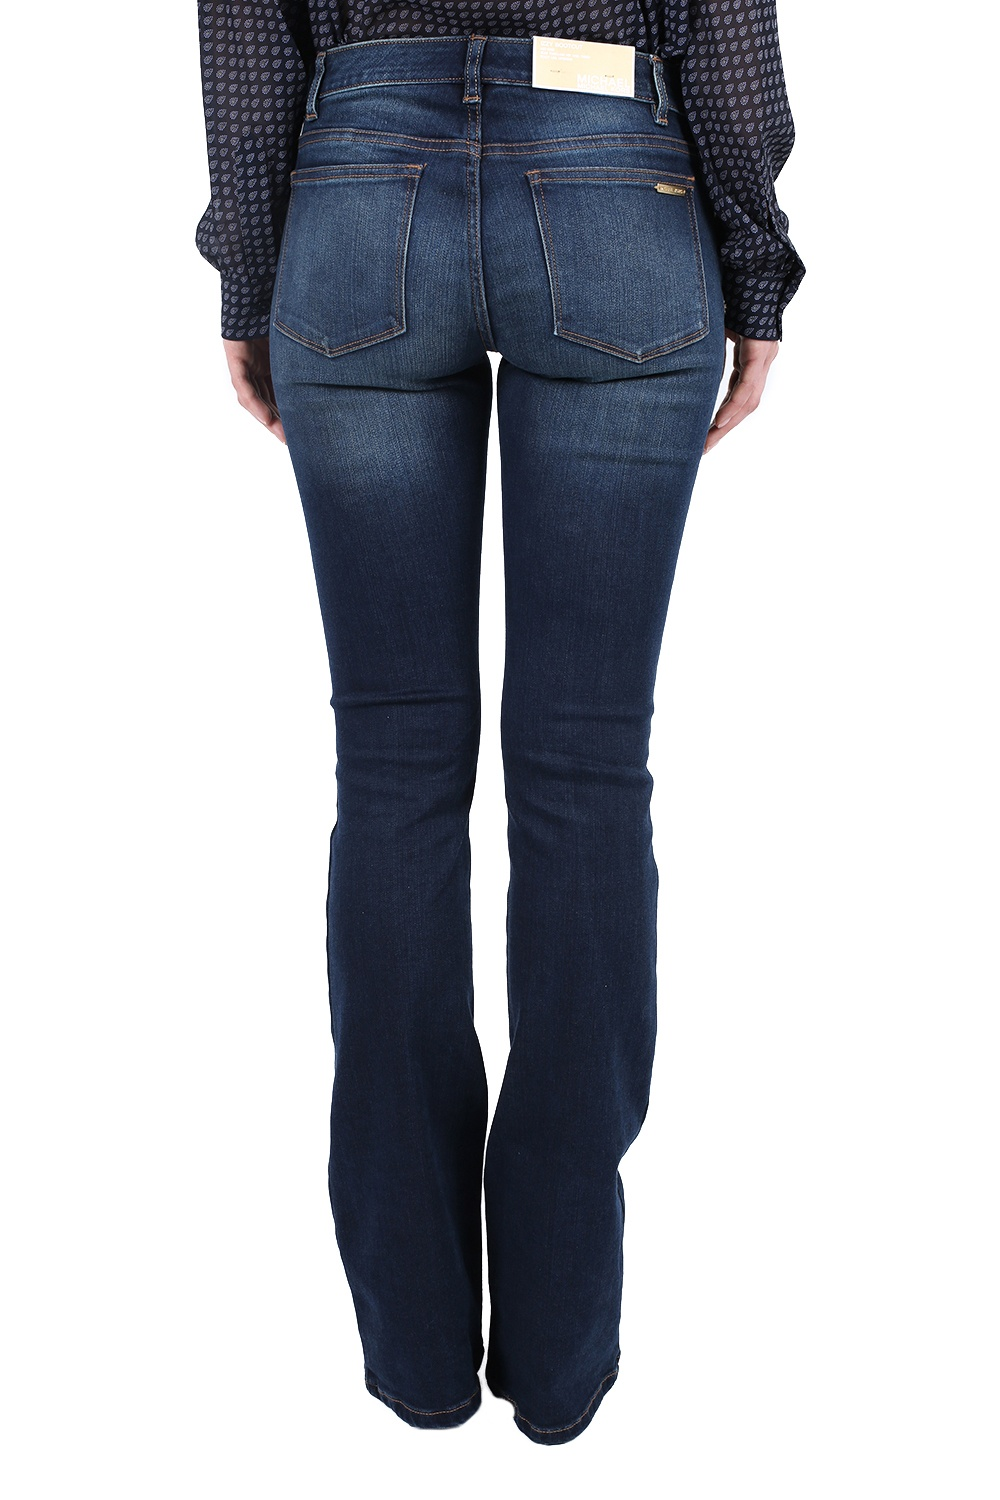 Michael Michael Kors 'Izzy Bootcut' flared jeans